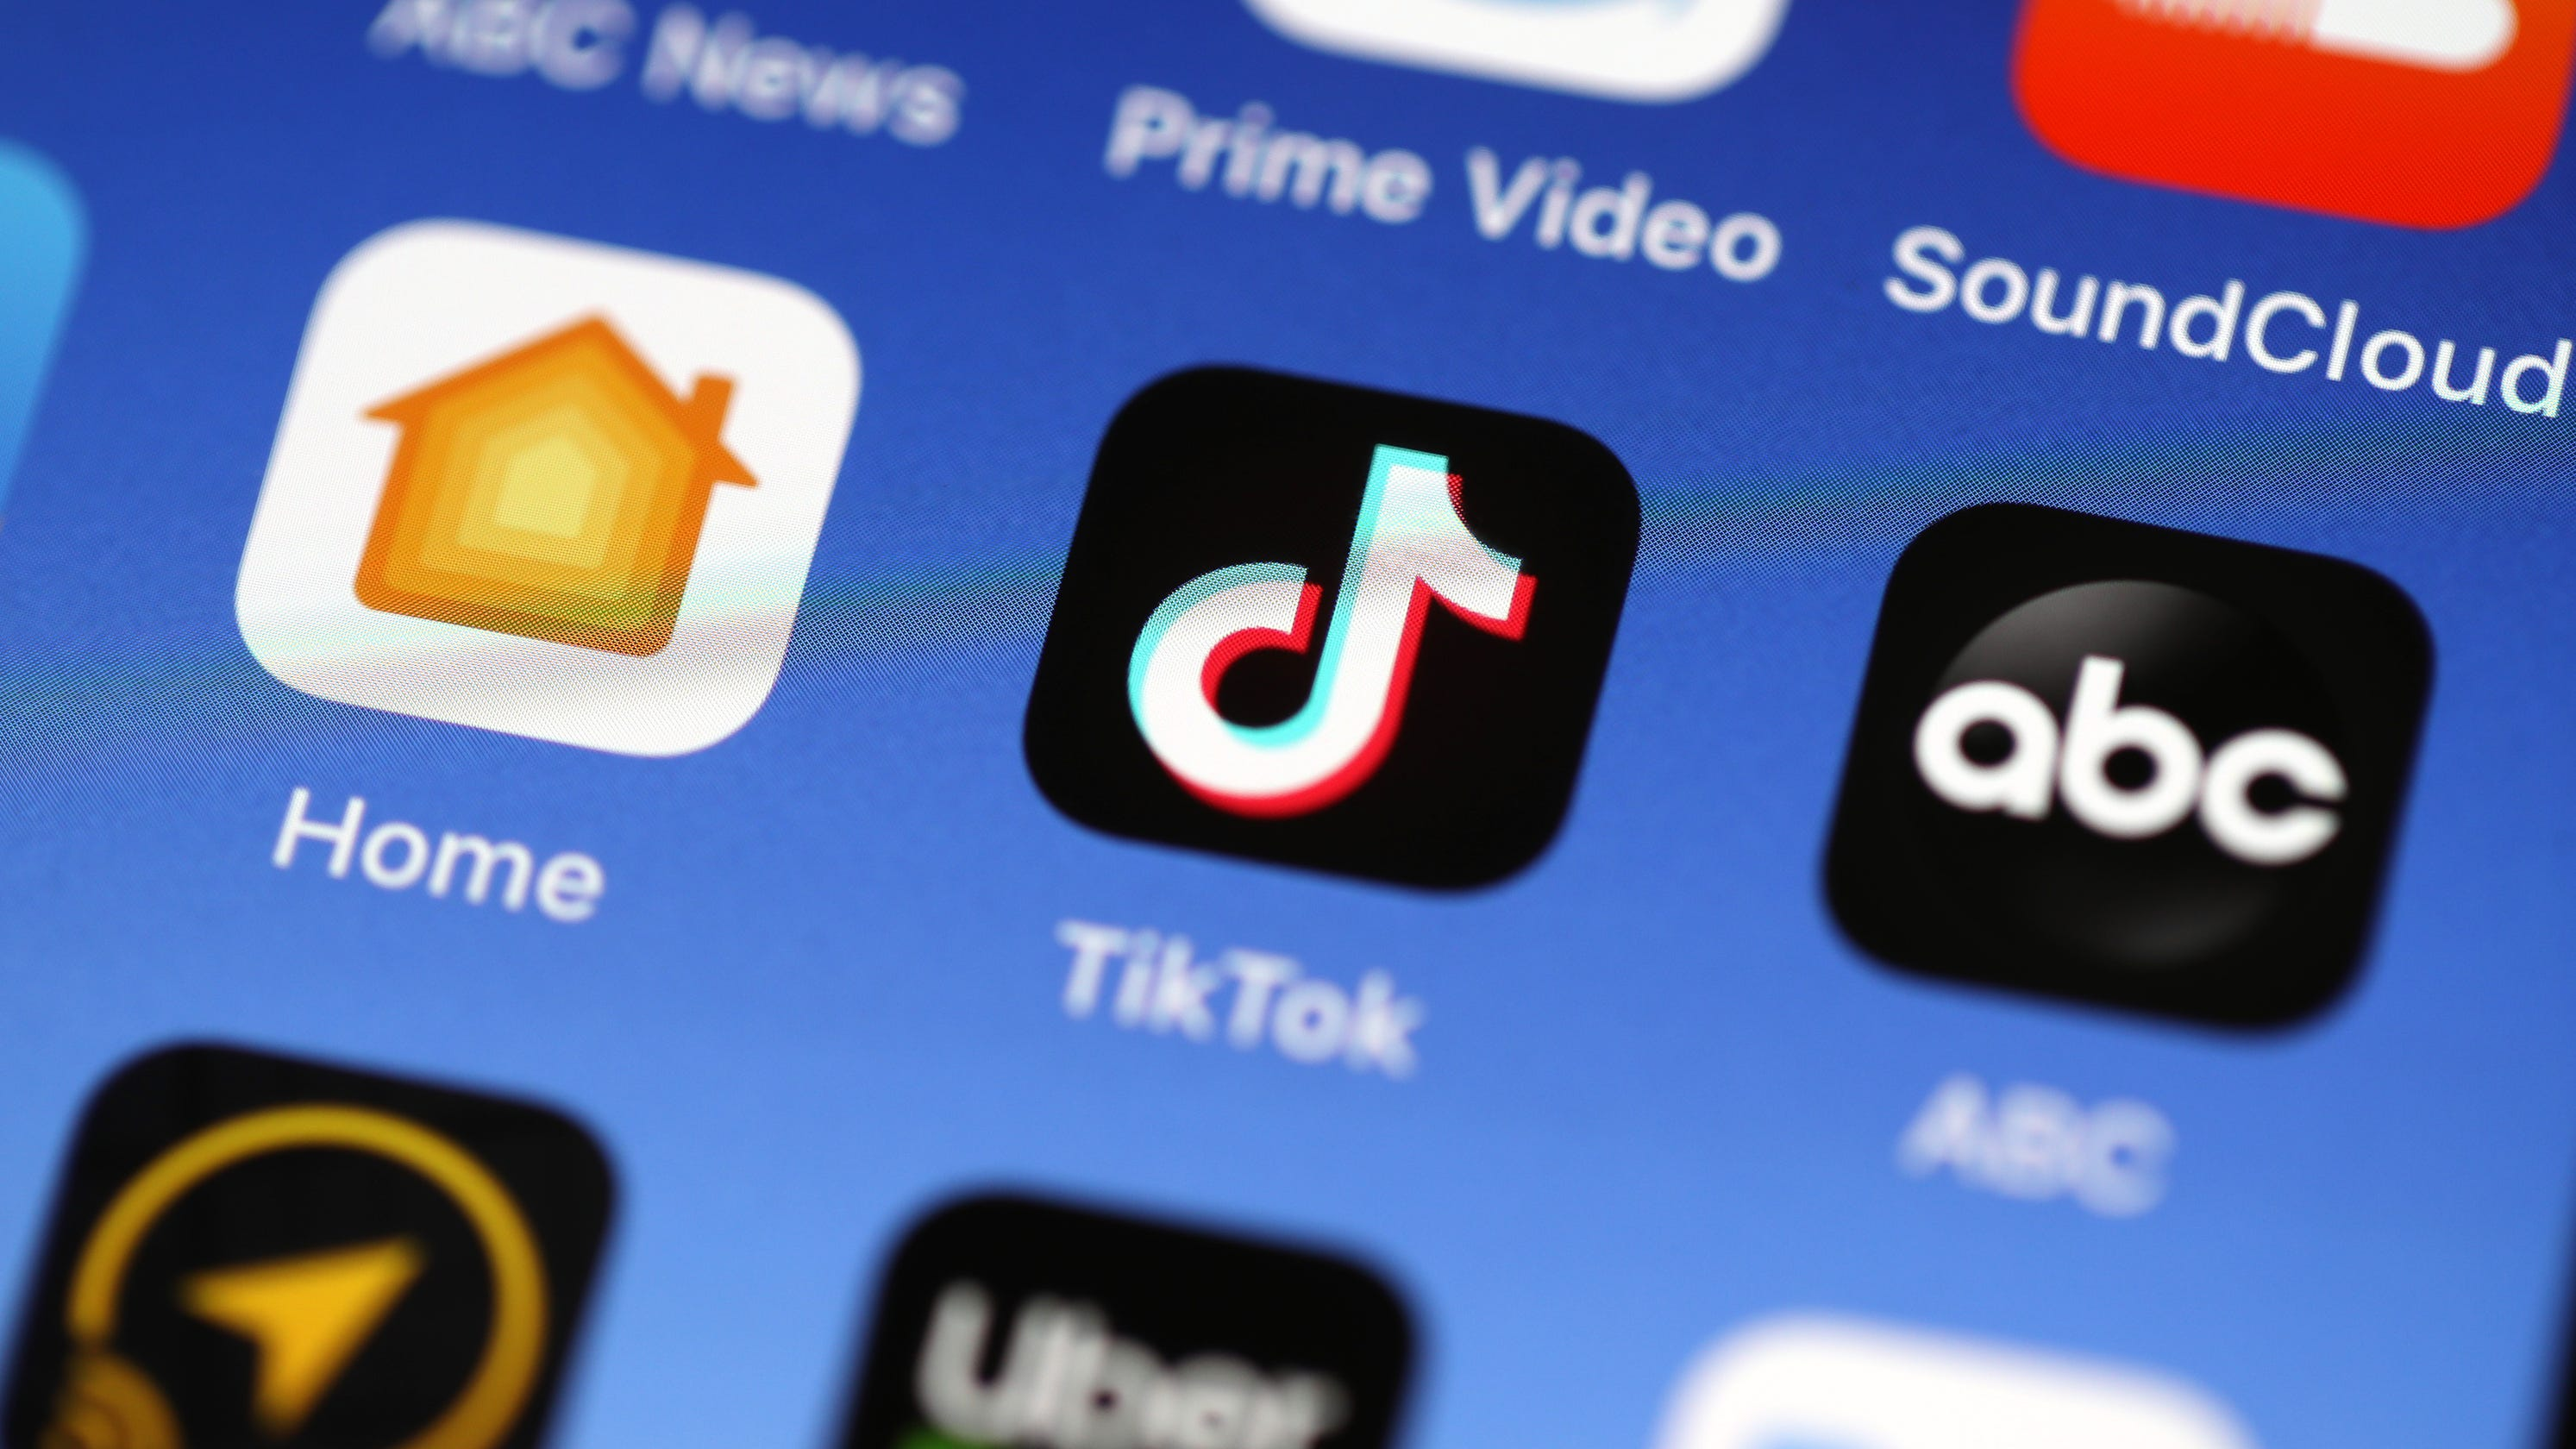 Ban TikTok? Trump campaign pushes Facebook ads asking if he should block the music app